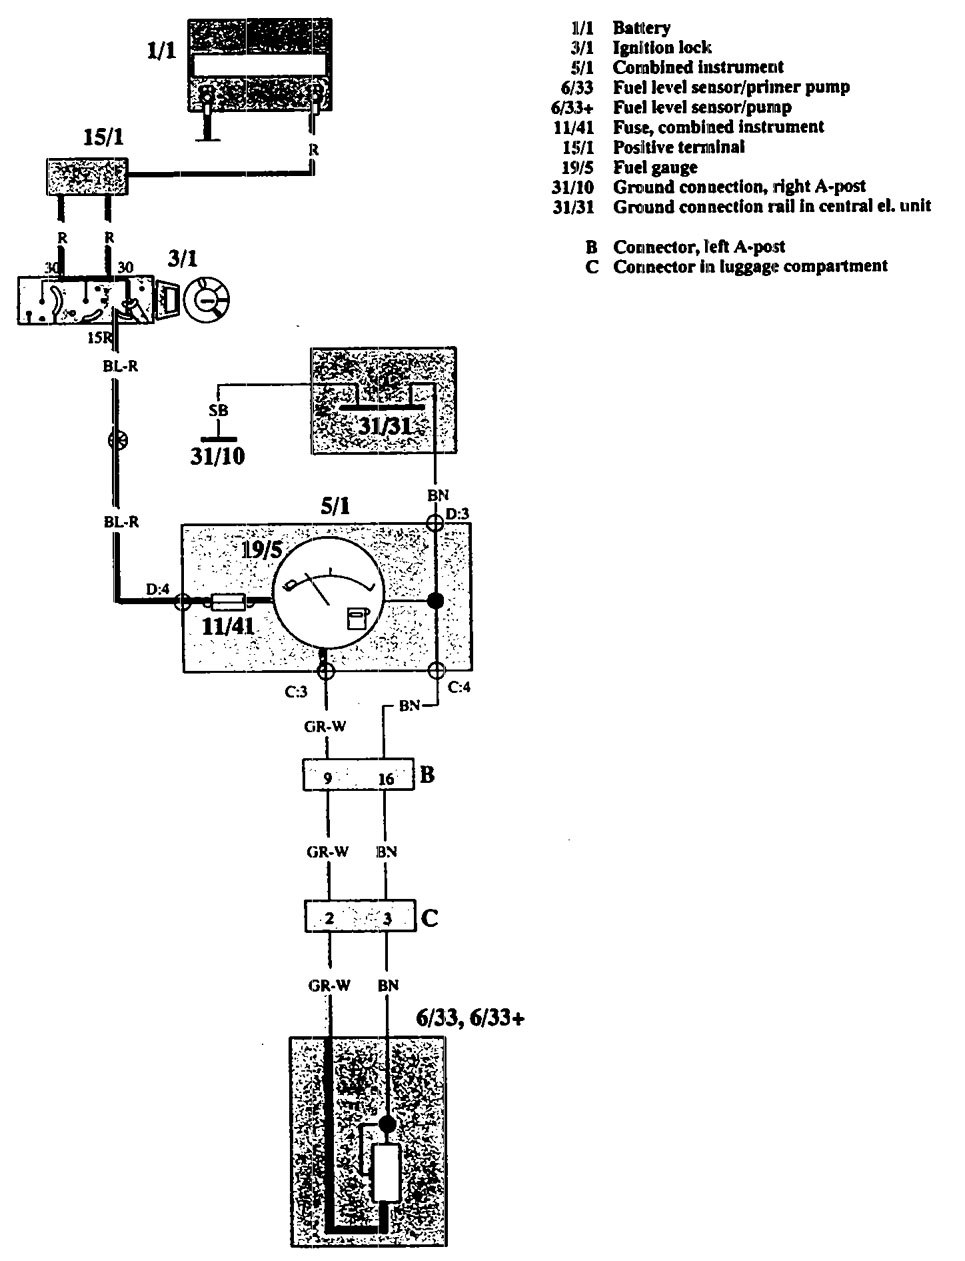 Volvo 740 Ignission Switch Wiring Diagram on 1991 volvo 240 engine wiring diagram